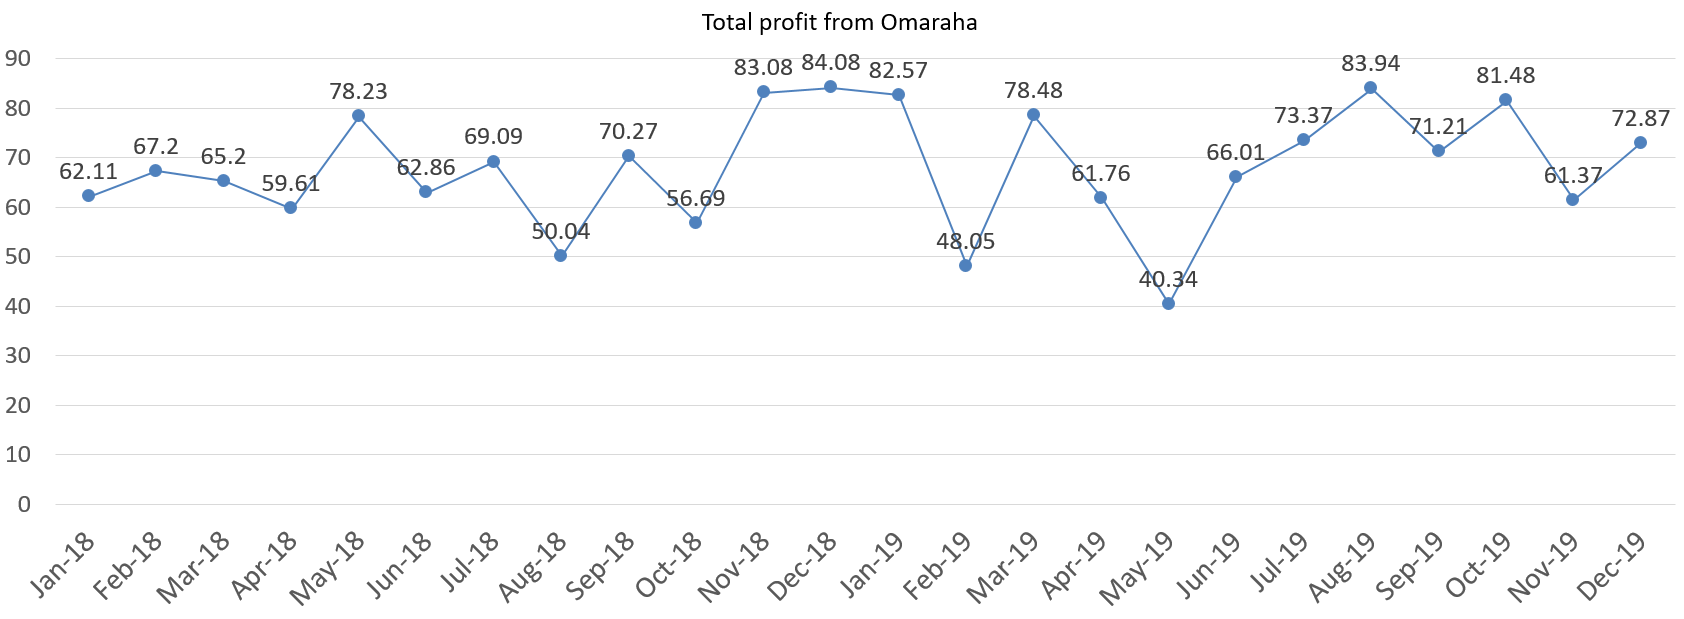 Omaraha total profit in euros, december 2019